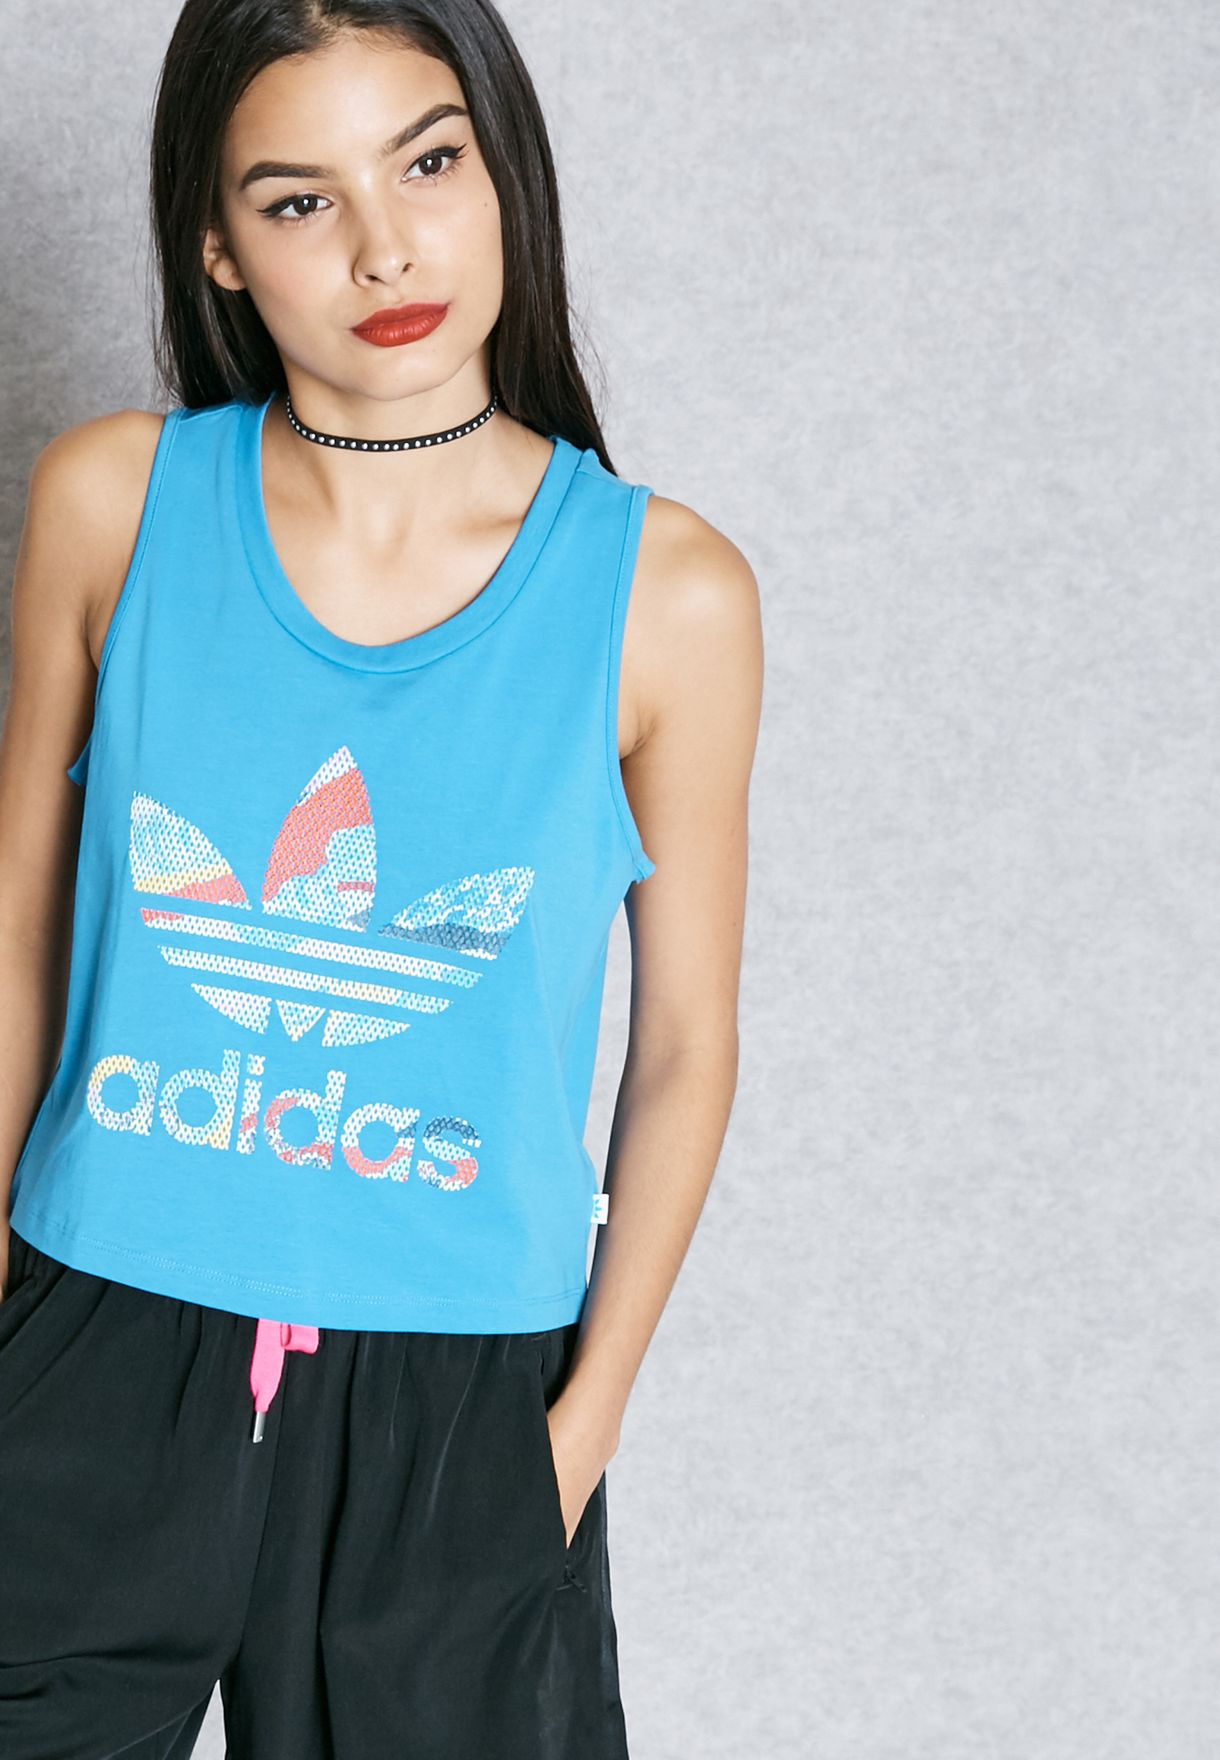 088306085bc Shop adidas Originals blue Loose Crop Tank Top BK2087 for Women in ...